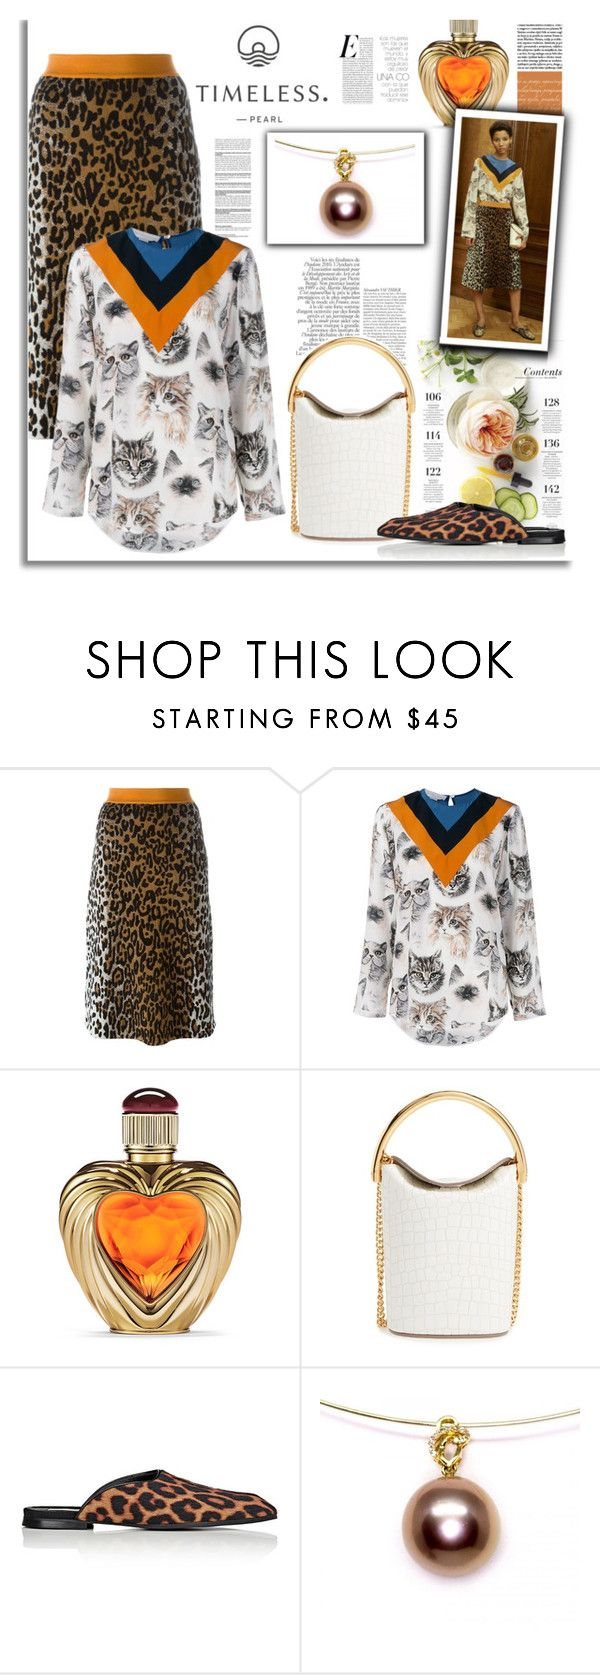 """""""Bronze Treasure Pearl Pendant"""" by timelesspearl ❤ liked on Polyvore featuring STELLA McCARTNEY, Martha Stewart and Victoria's Secret"""